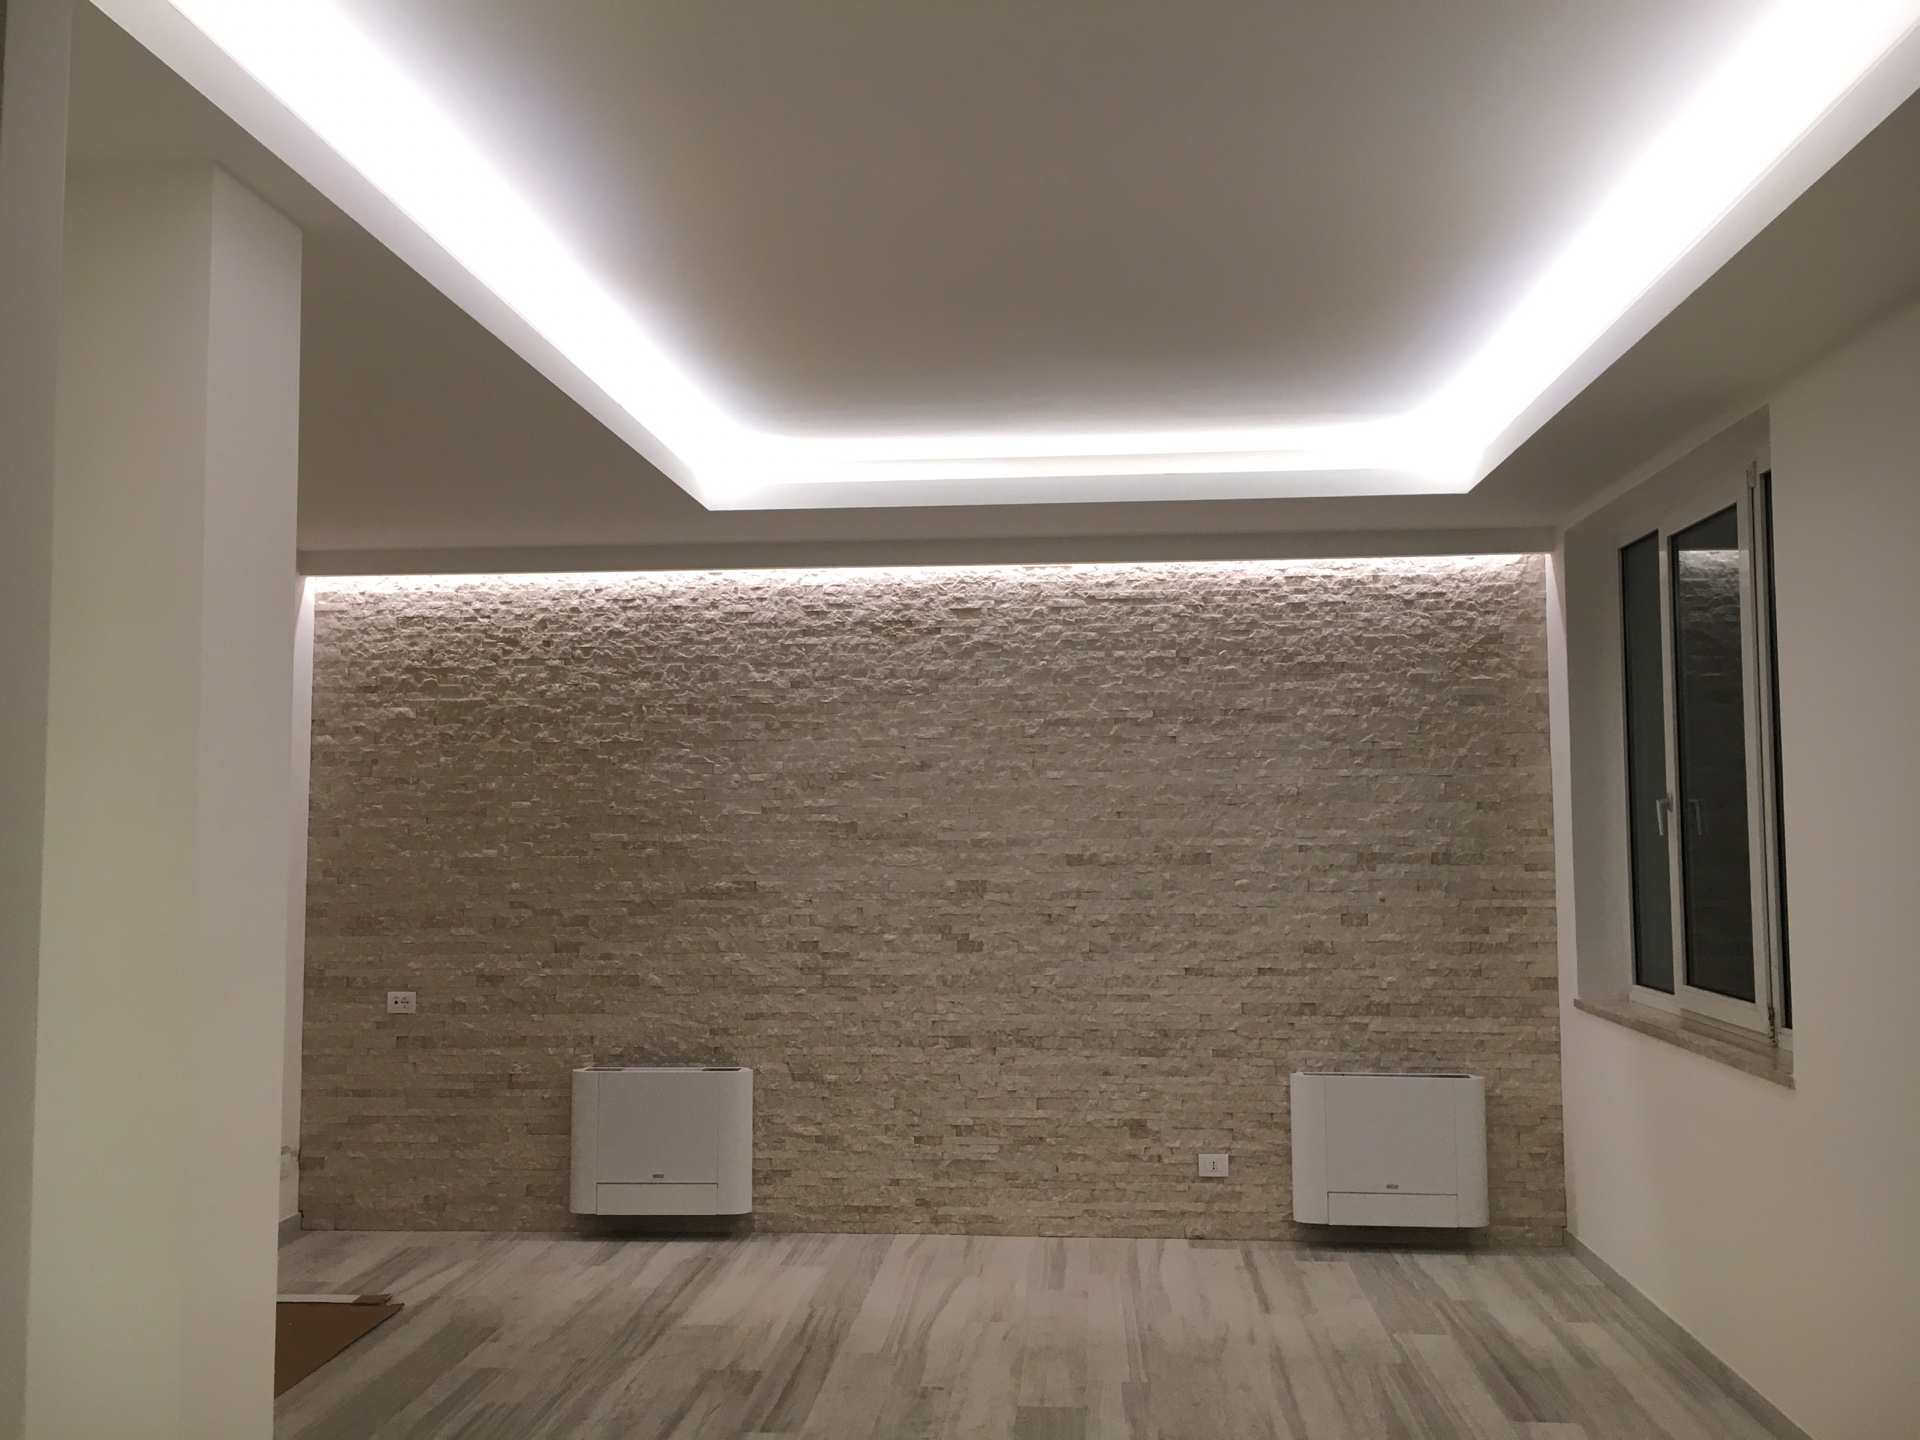 12 idee per illuminare casa e risparmiare mes retail for Luci a led per interni casa